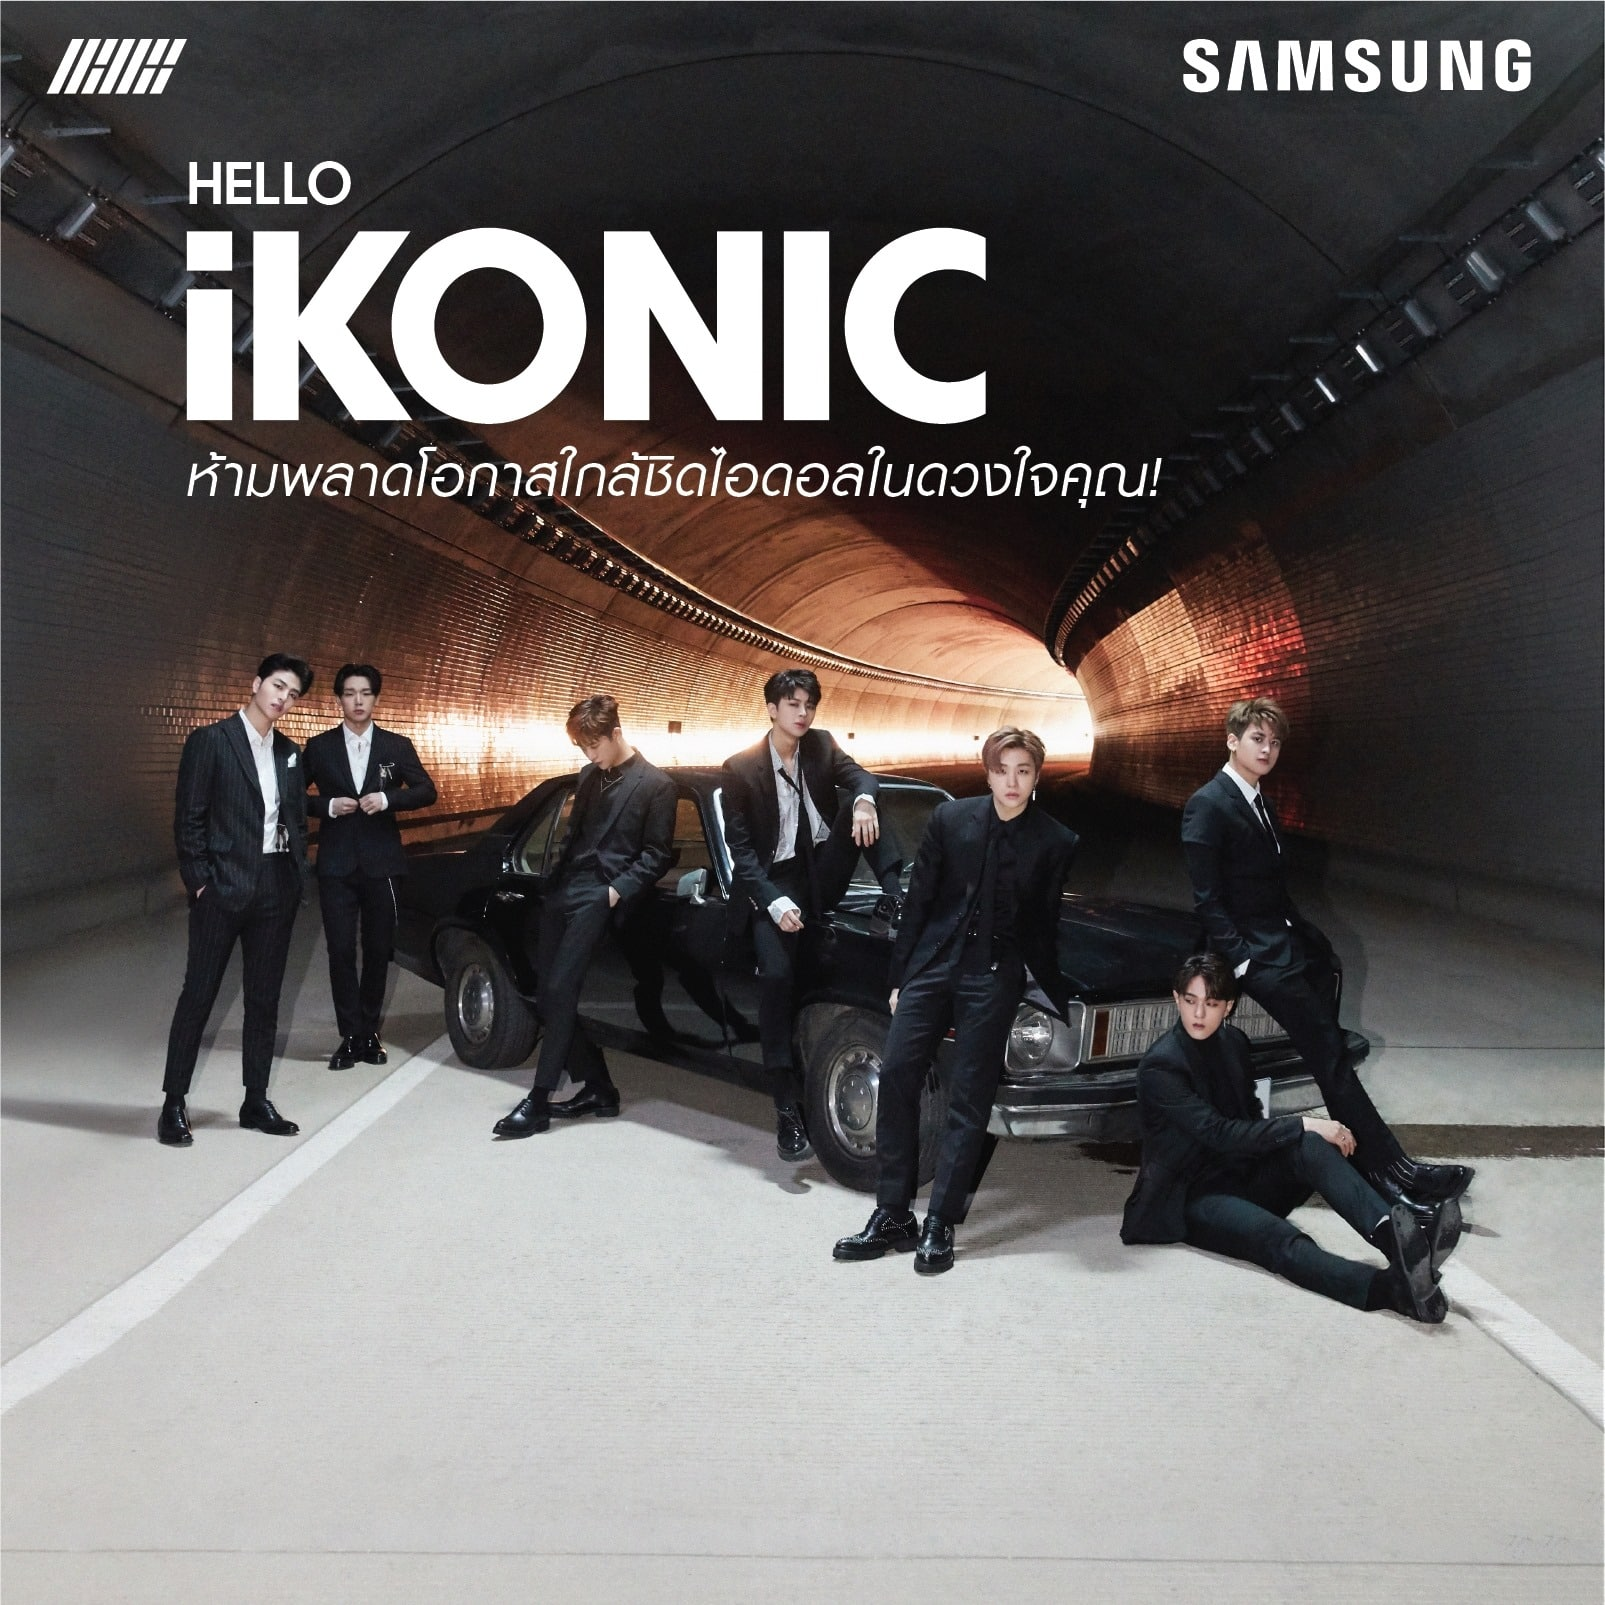 10-is-samsung-x-ikon.